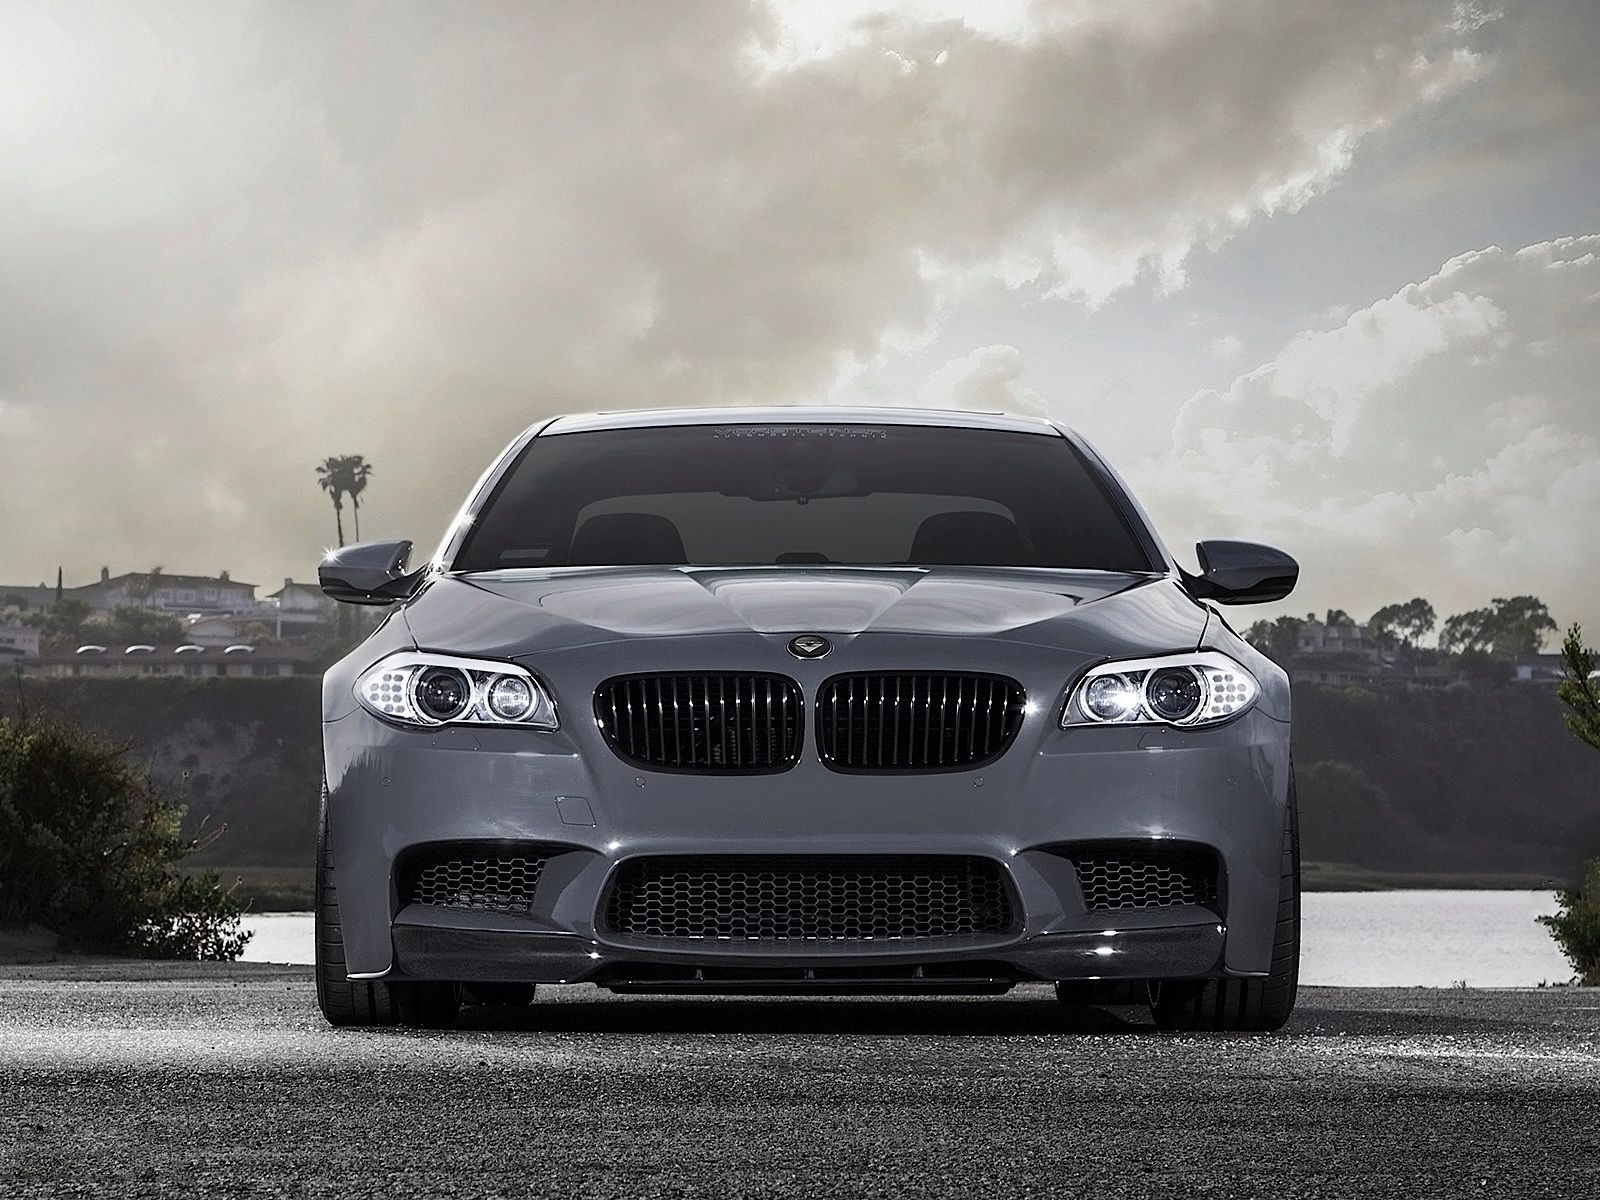 bmw f10 m5 wallpaper 381 bmw bmw m5 f10 bmw bmw m5. Black Bedroom Furniture Sets. Home Design Ideas